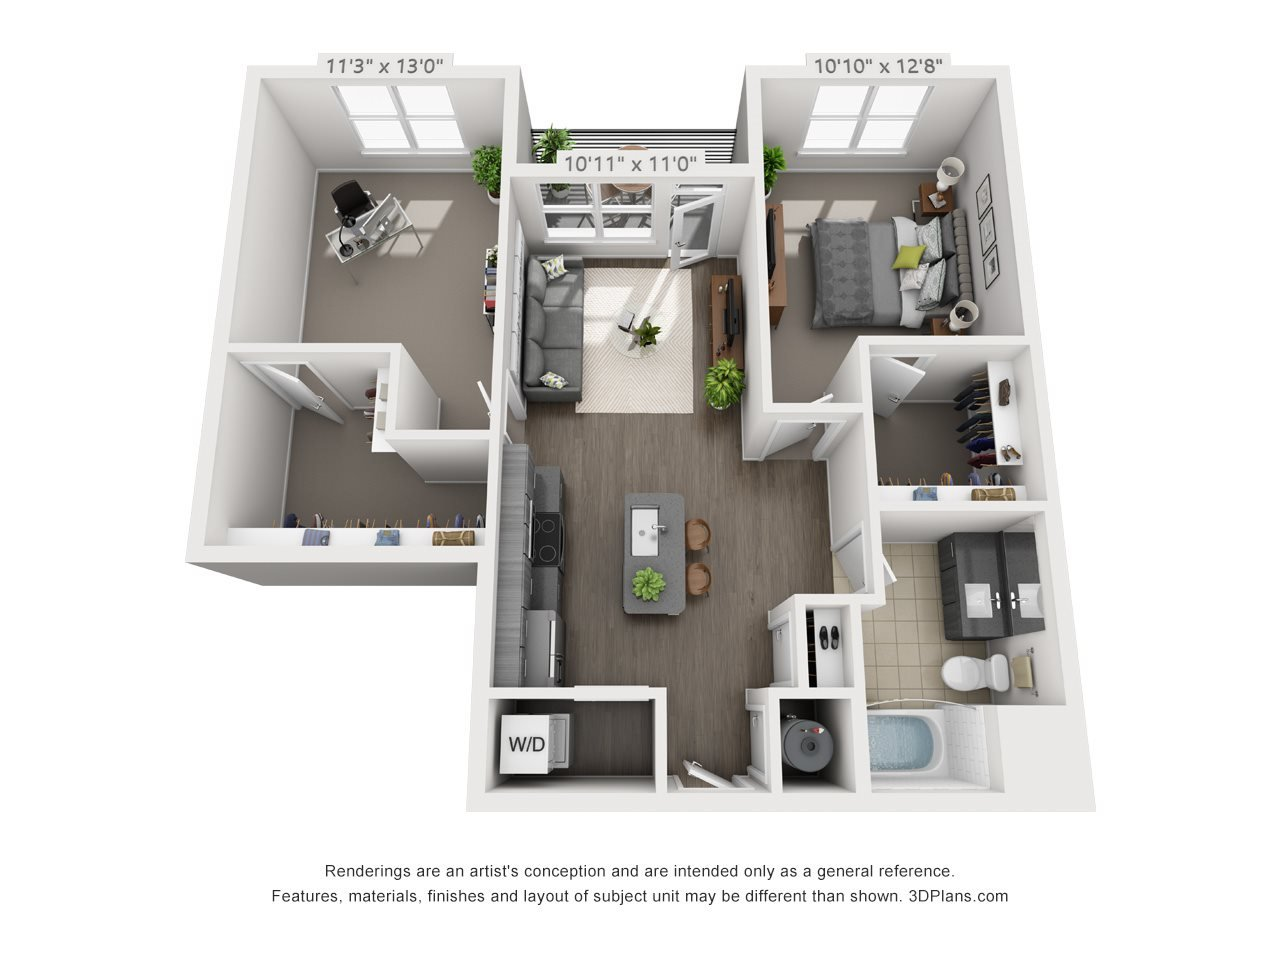 A8 1 BEDROOM/1 BATH/ OFFICE Floor Plan 11